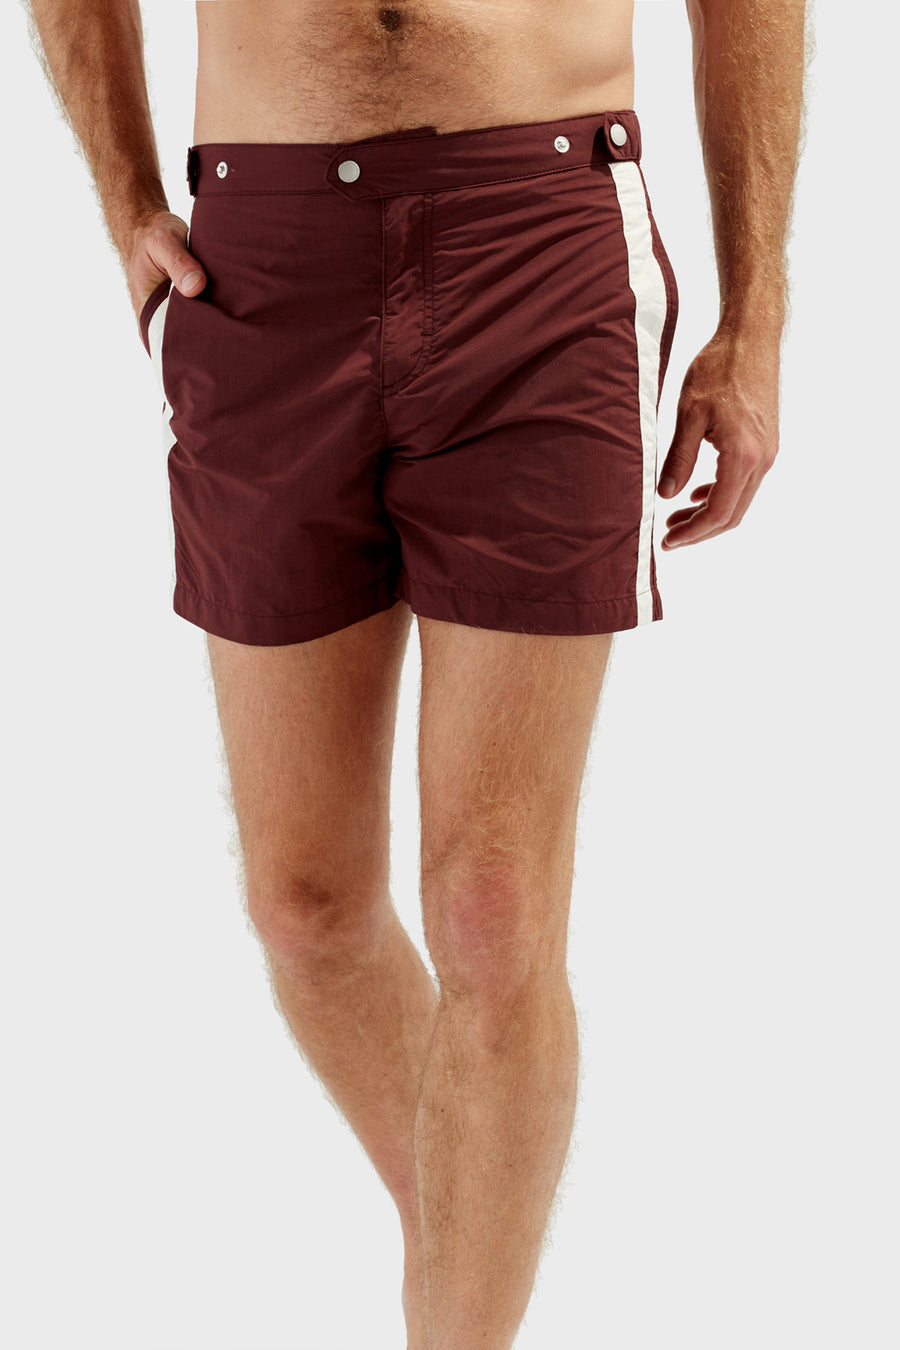 490c22bcac38e The Kennedy Swimshort in Burgundy Cream Side Stripe – Solid & Striped